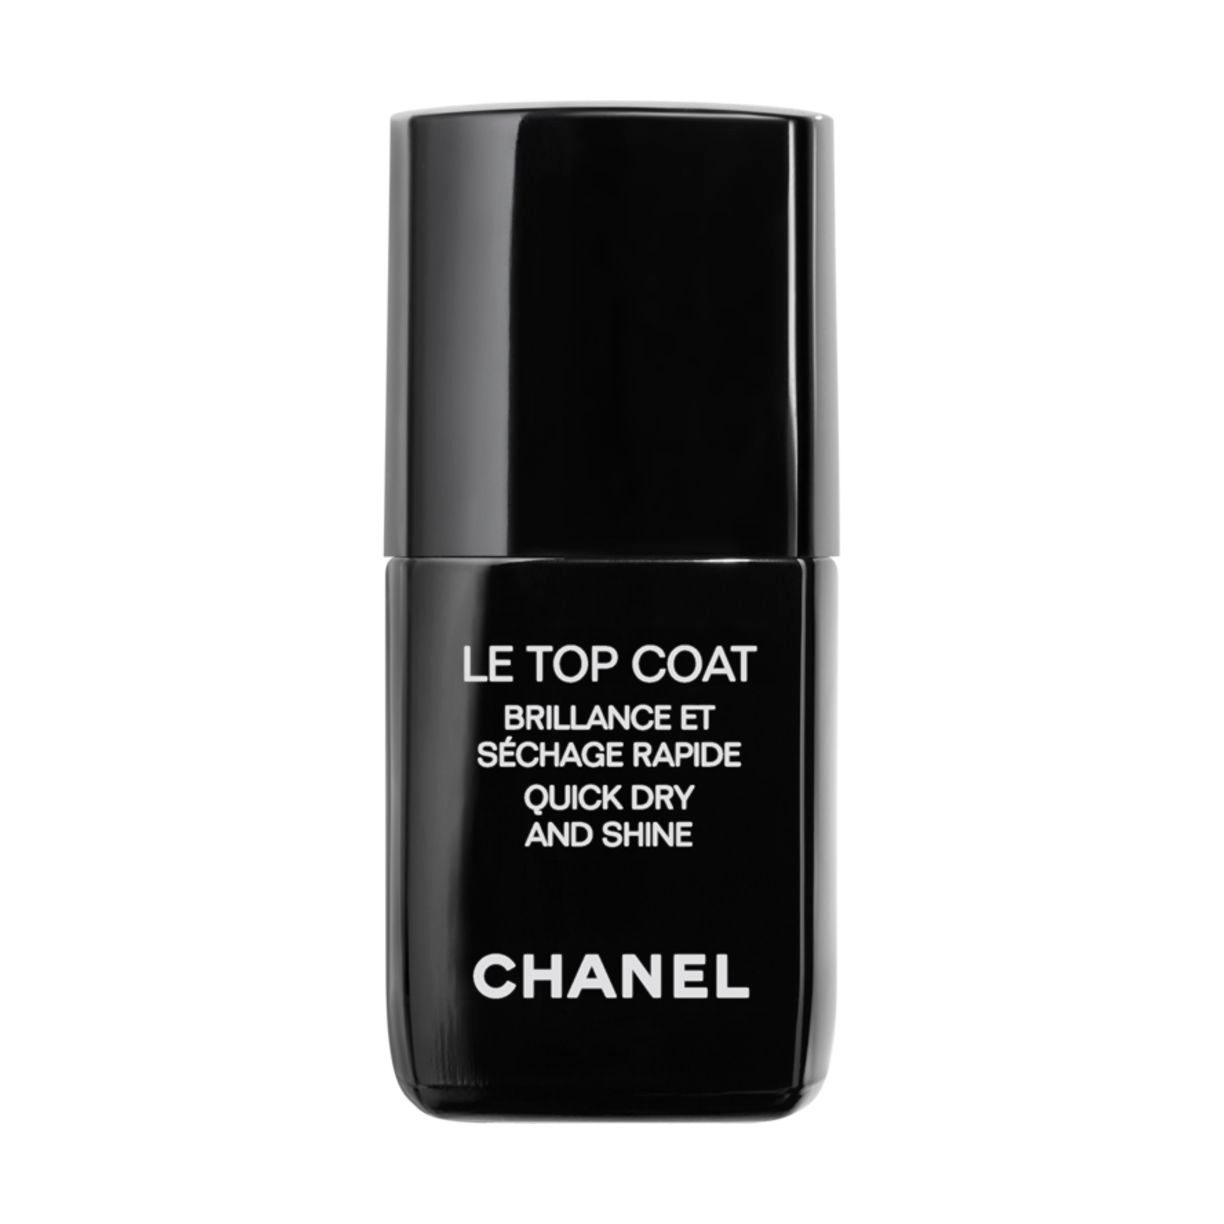 LE TOP COAT BRILLANCE ET SÉCHAGE RAPIDE 13ml